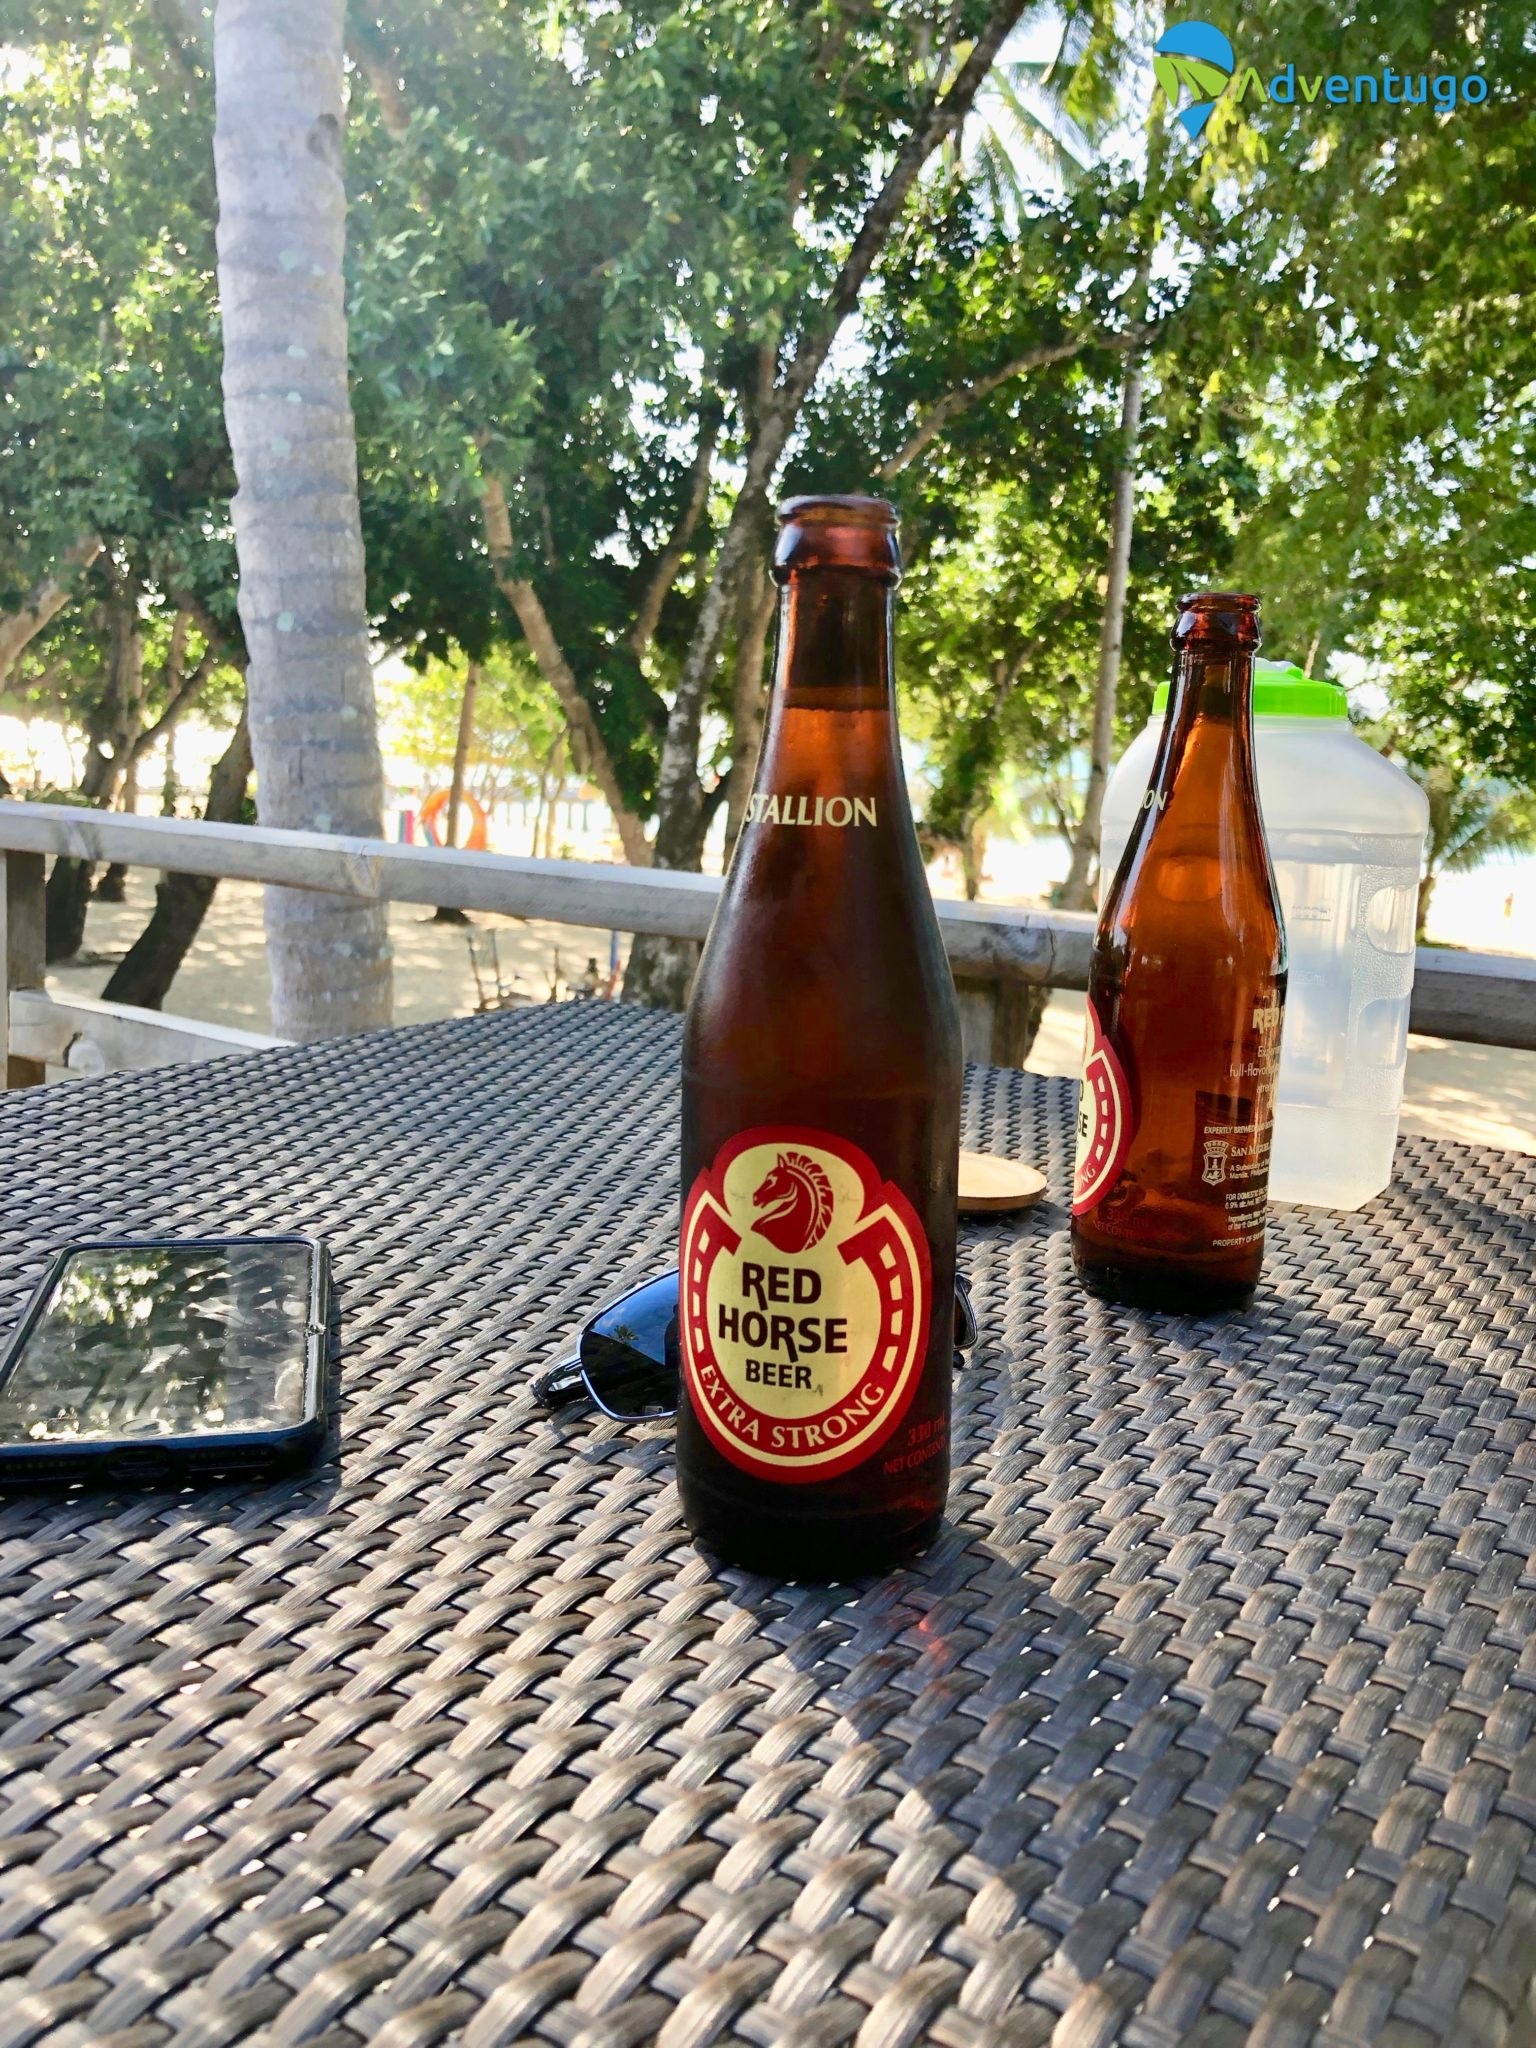 Red Horse Beer Philippines